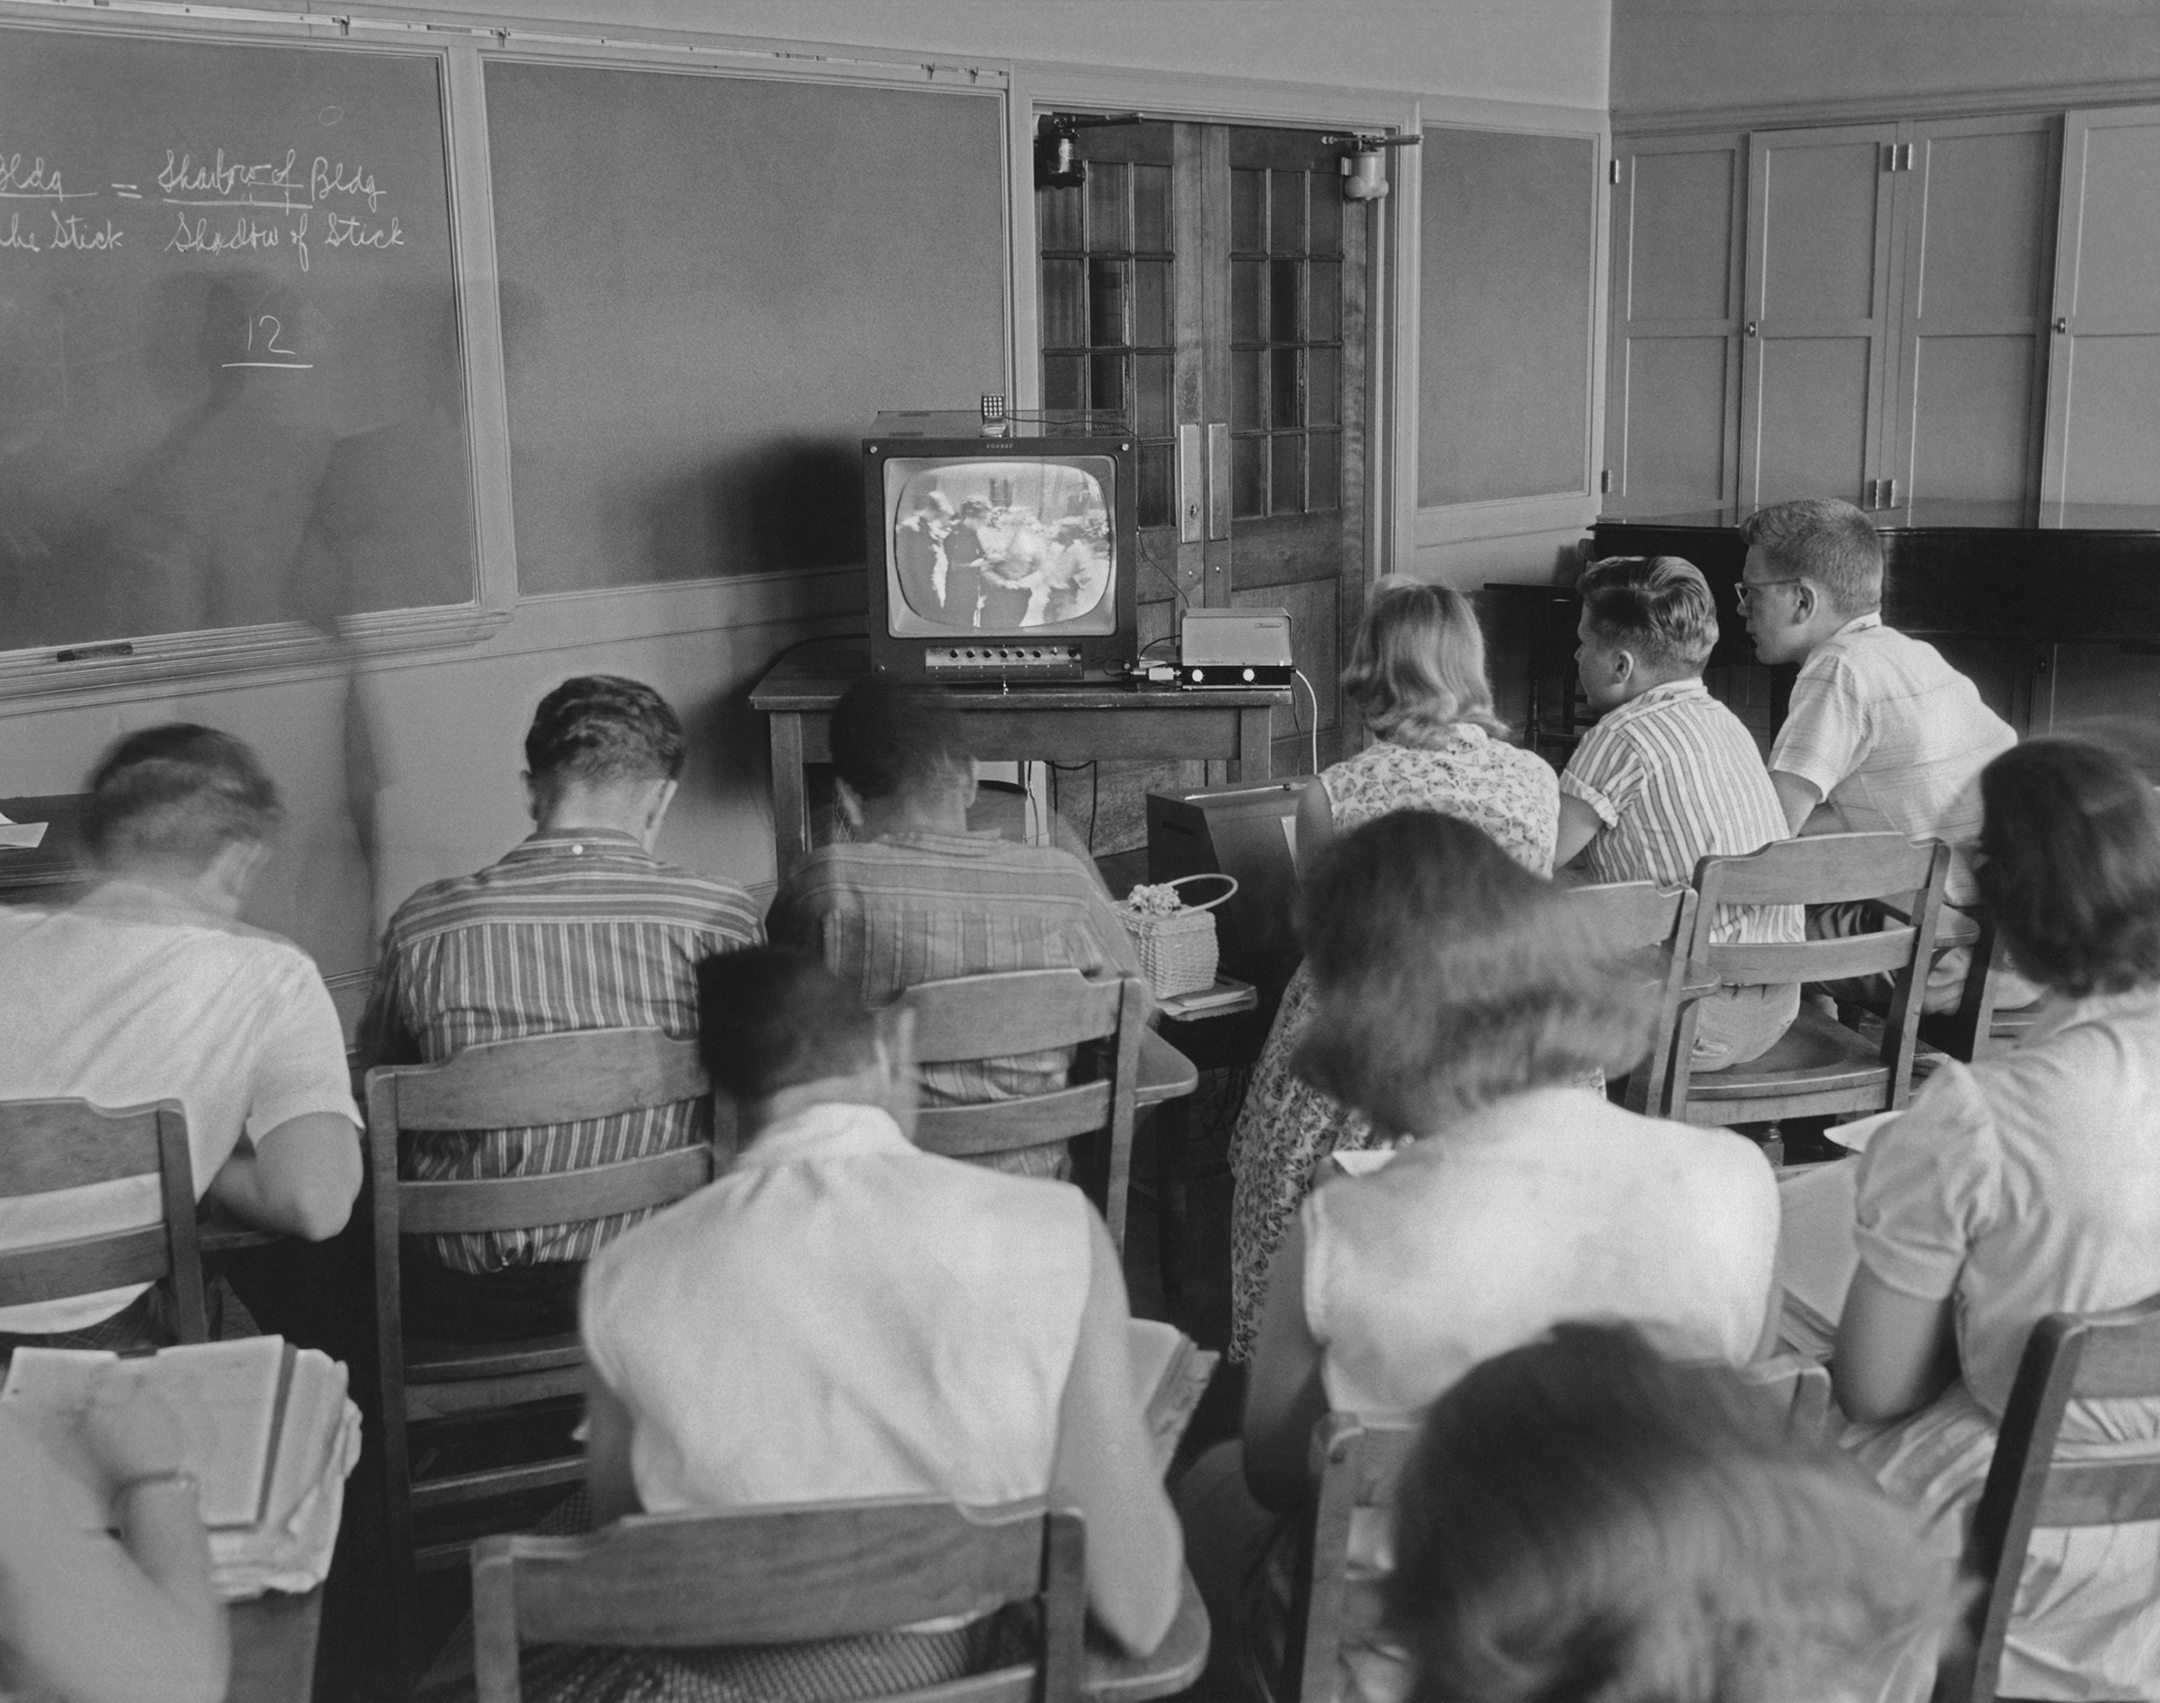 black and white photo of a classroom of students watching a lesson on a television